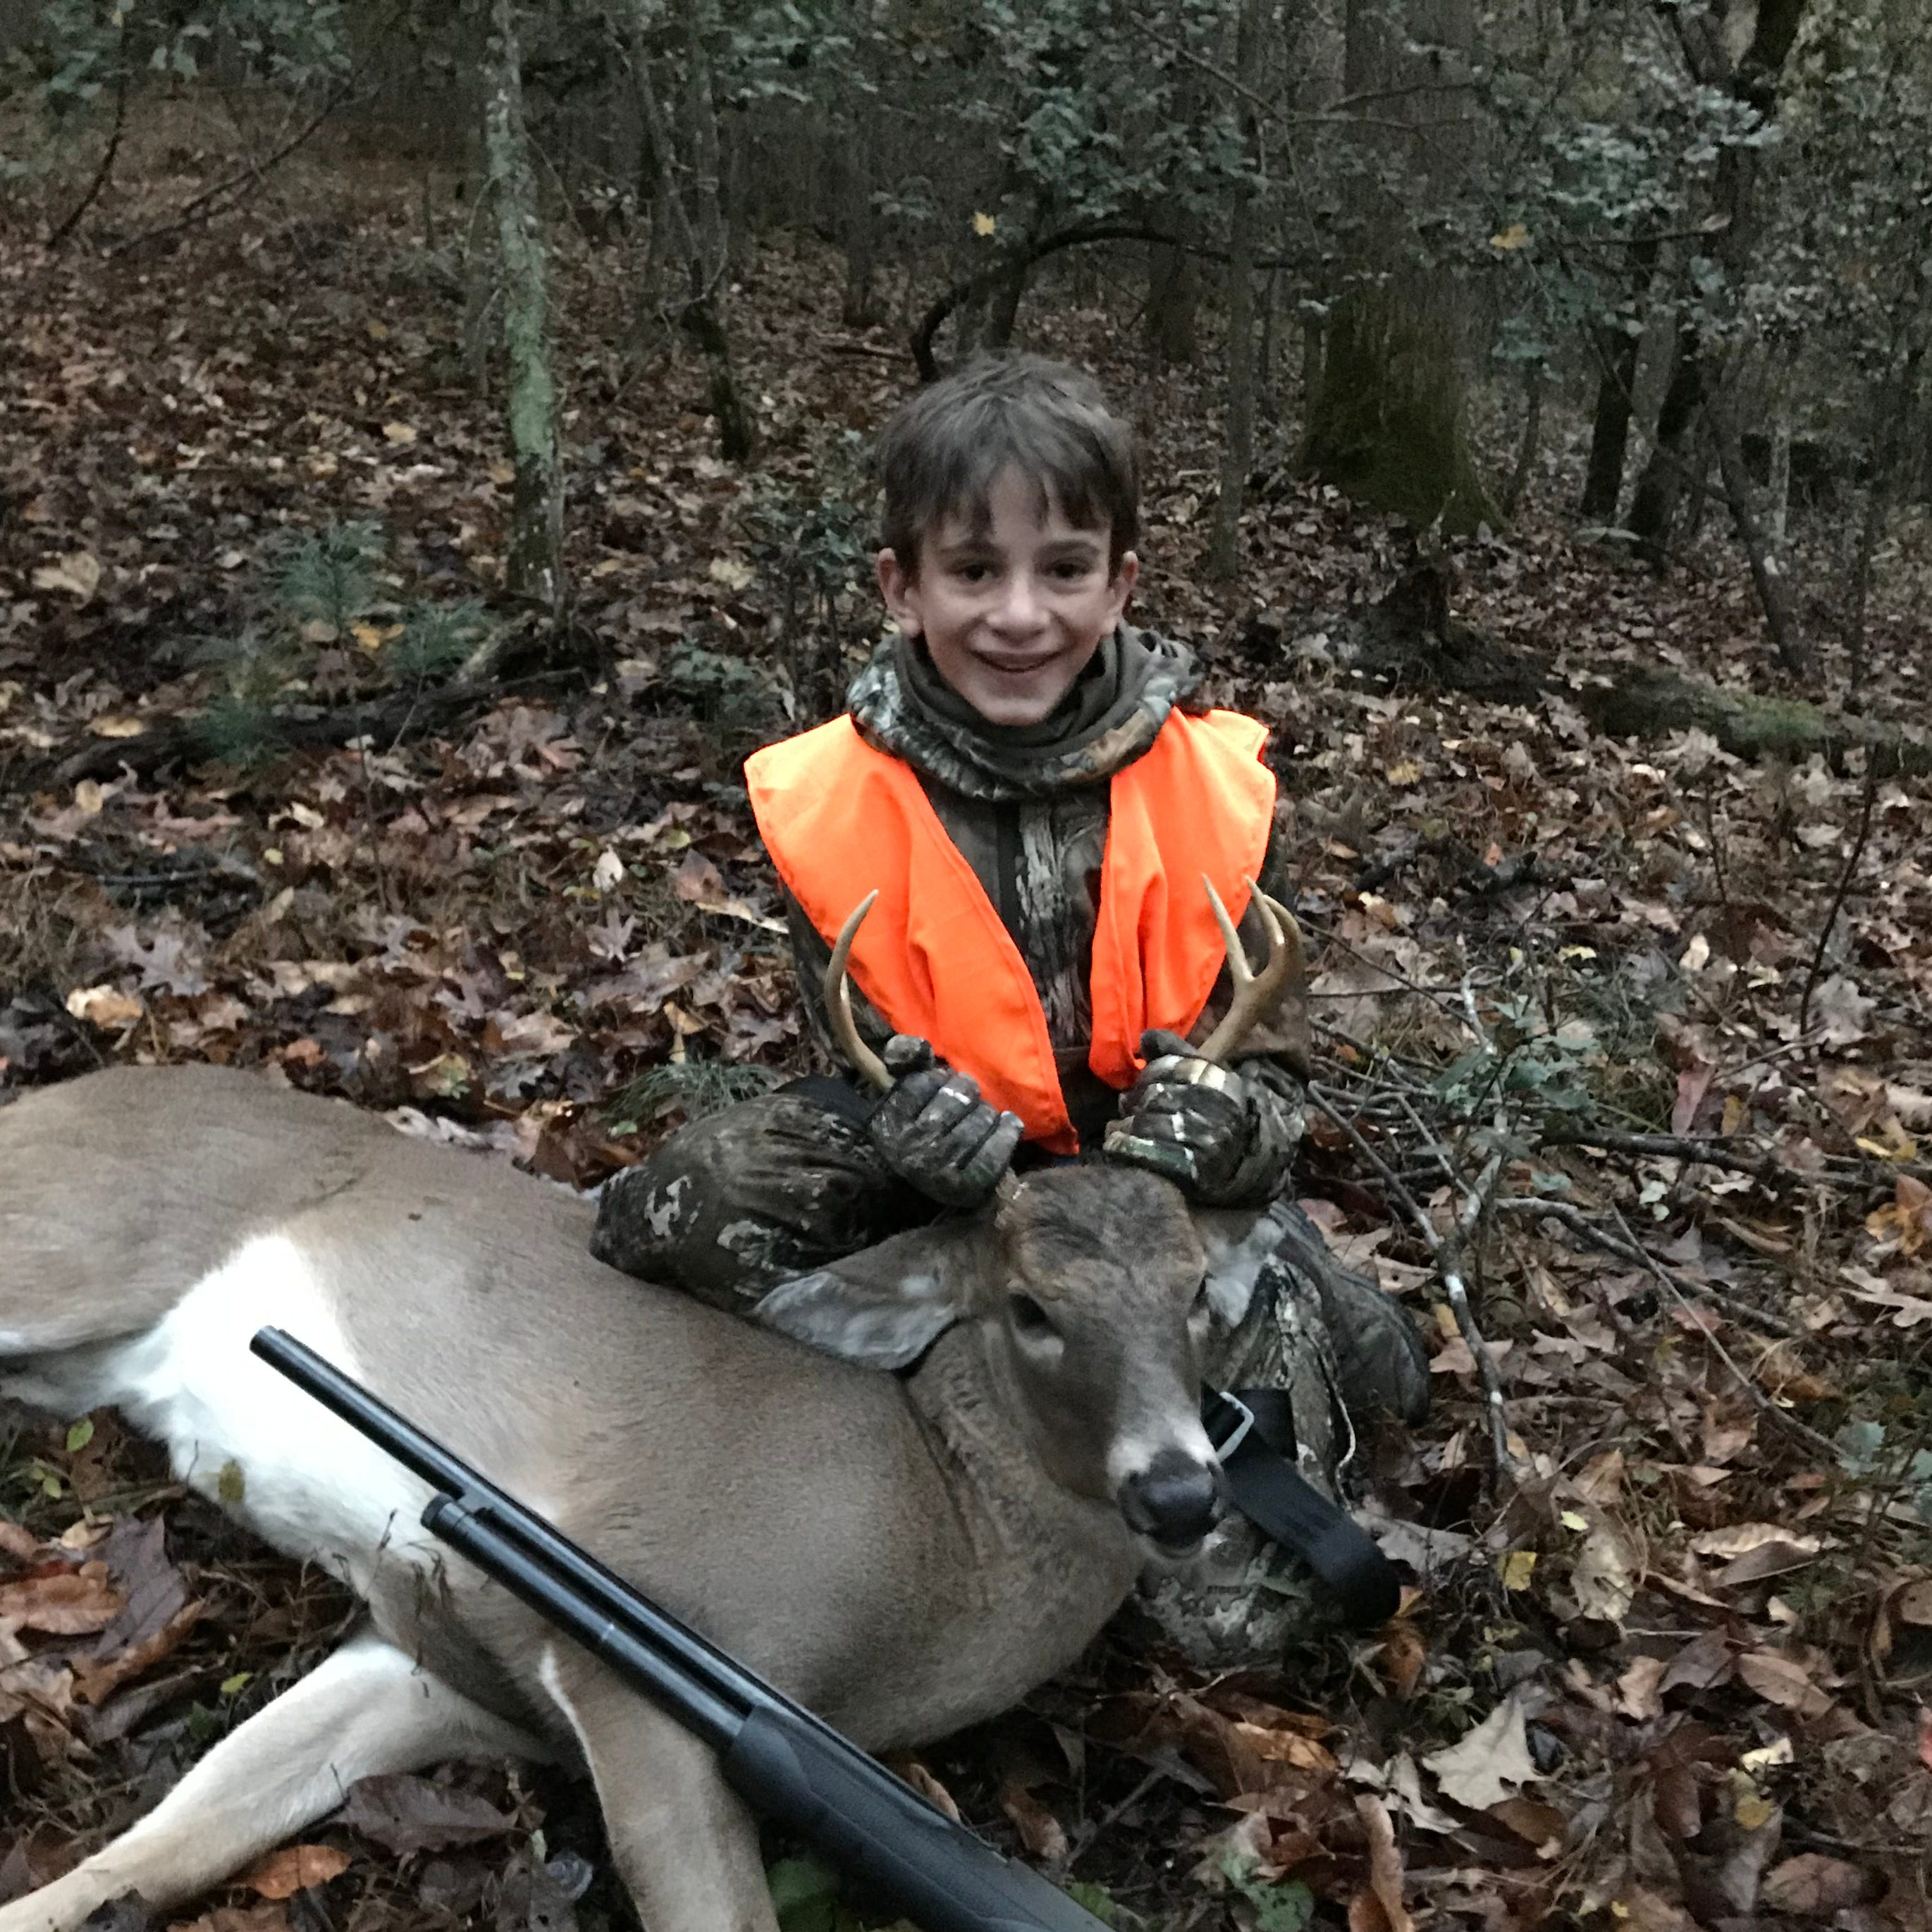 NC's youth-only deer hunting days encourage families to pass along tradition